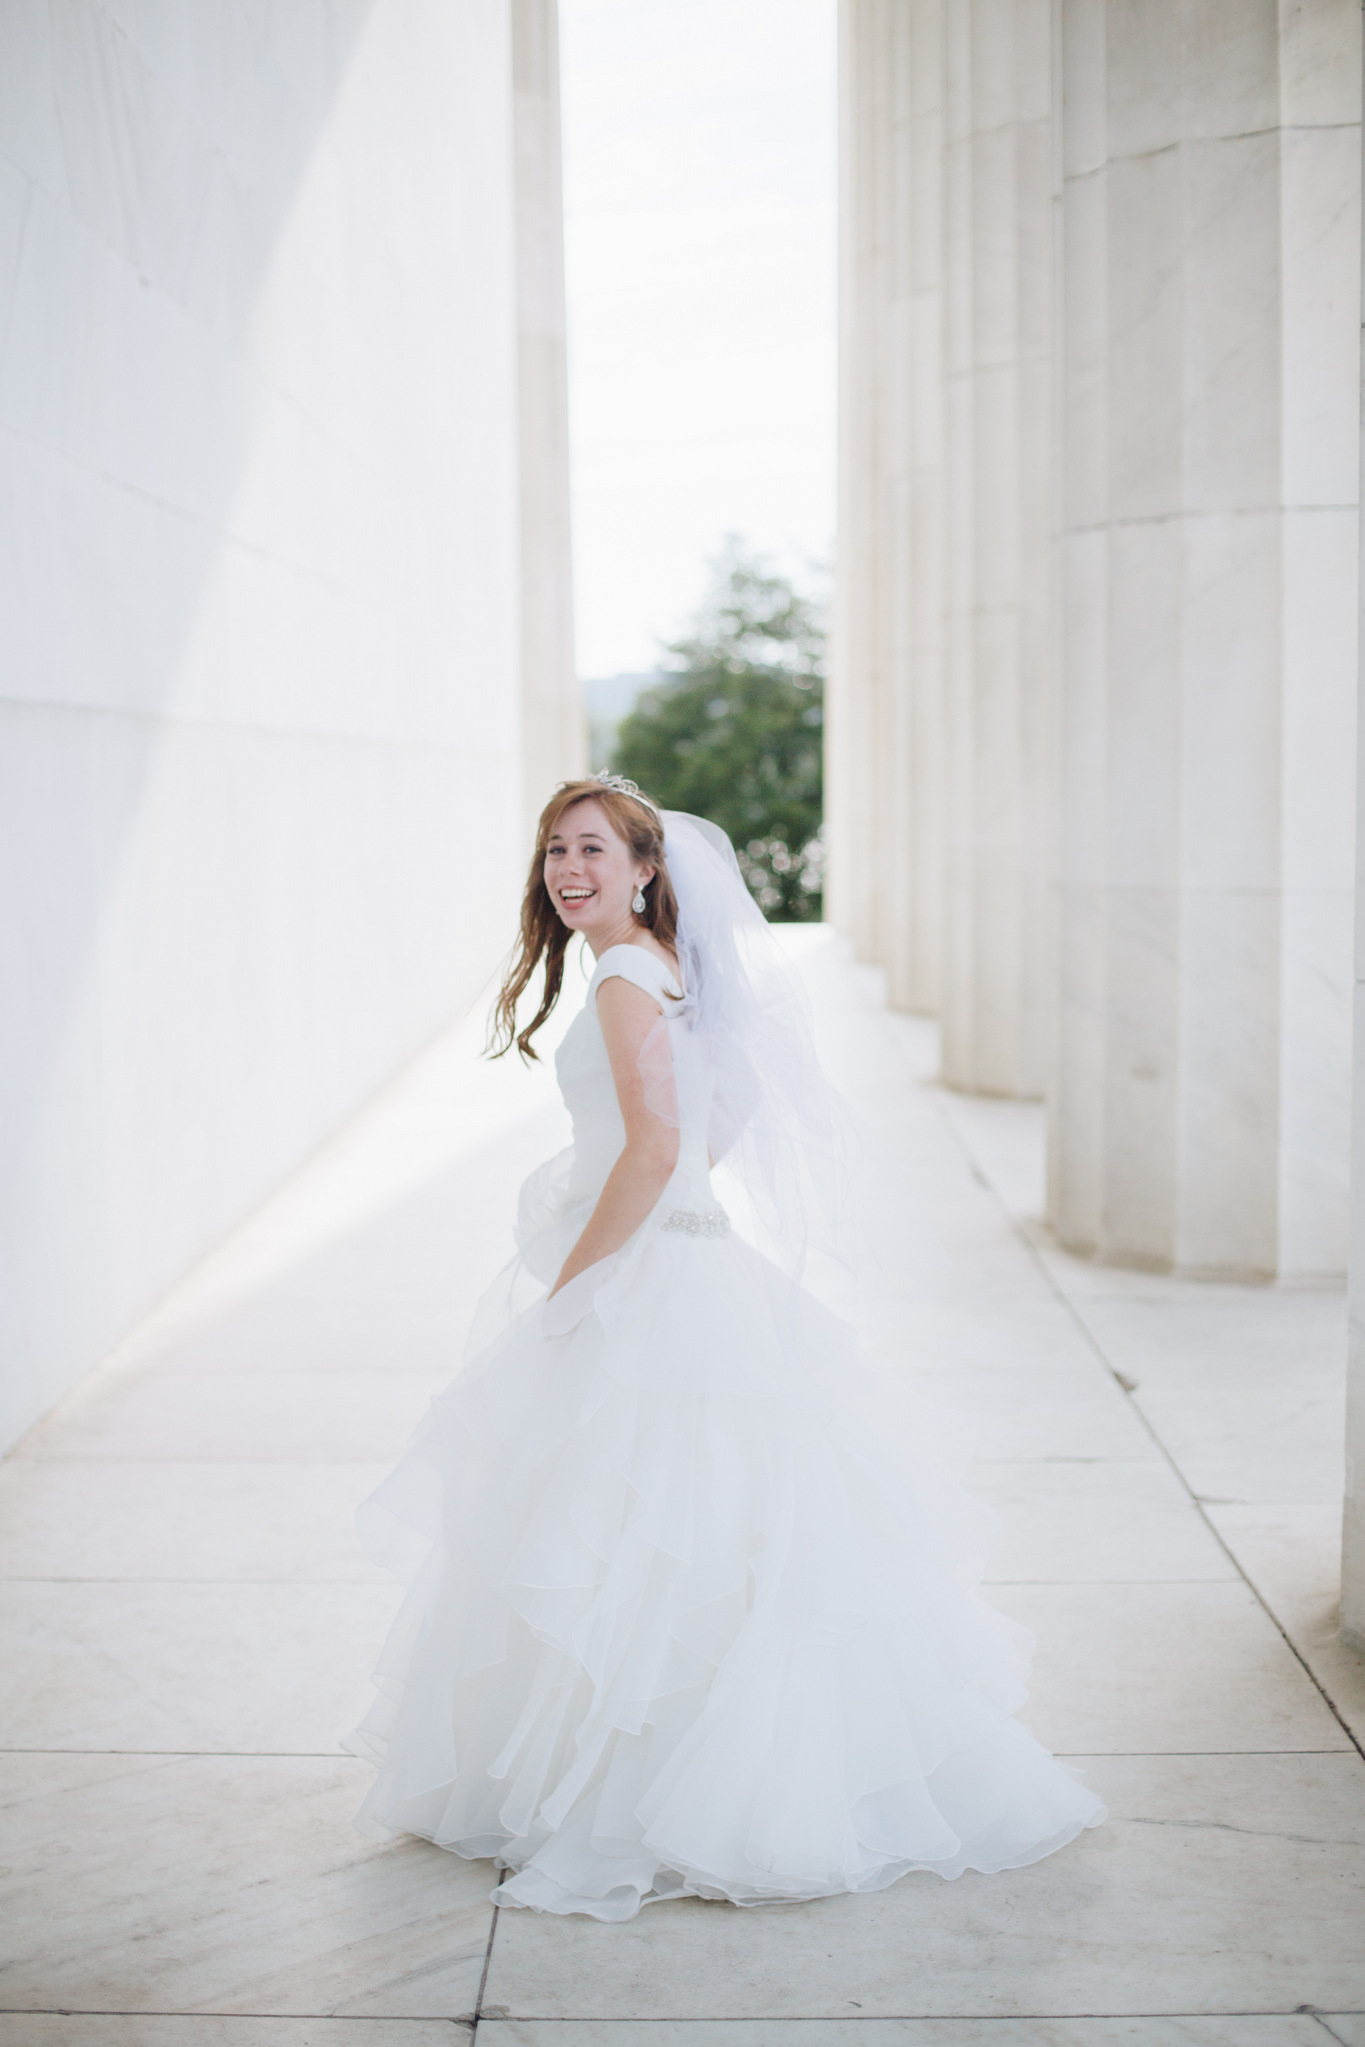 BRIDE: washington dc, lincoln memorial wedding photos, couple portraits